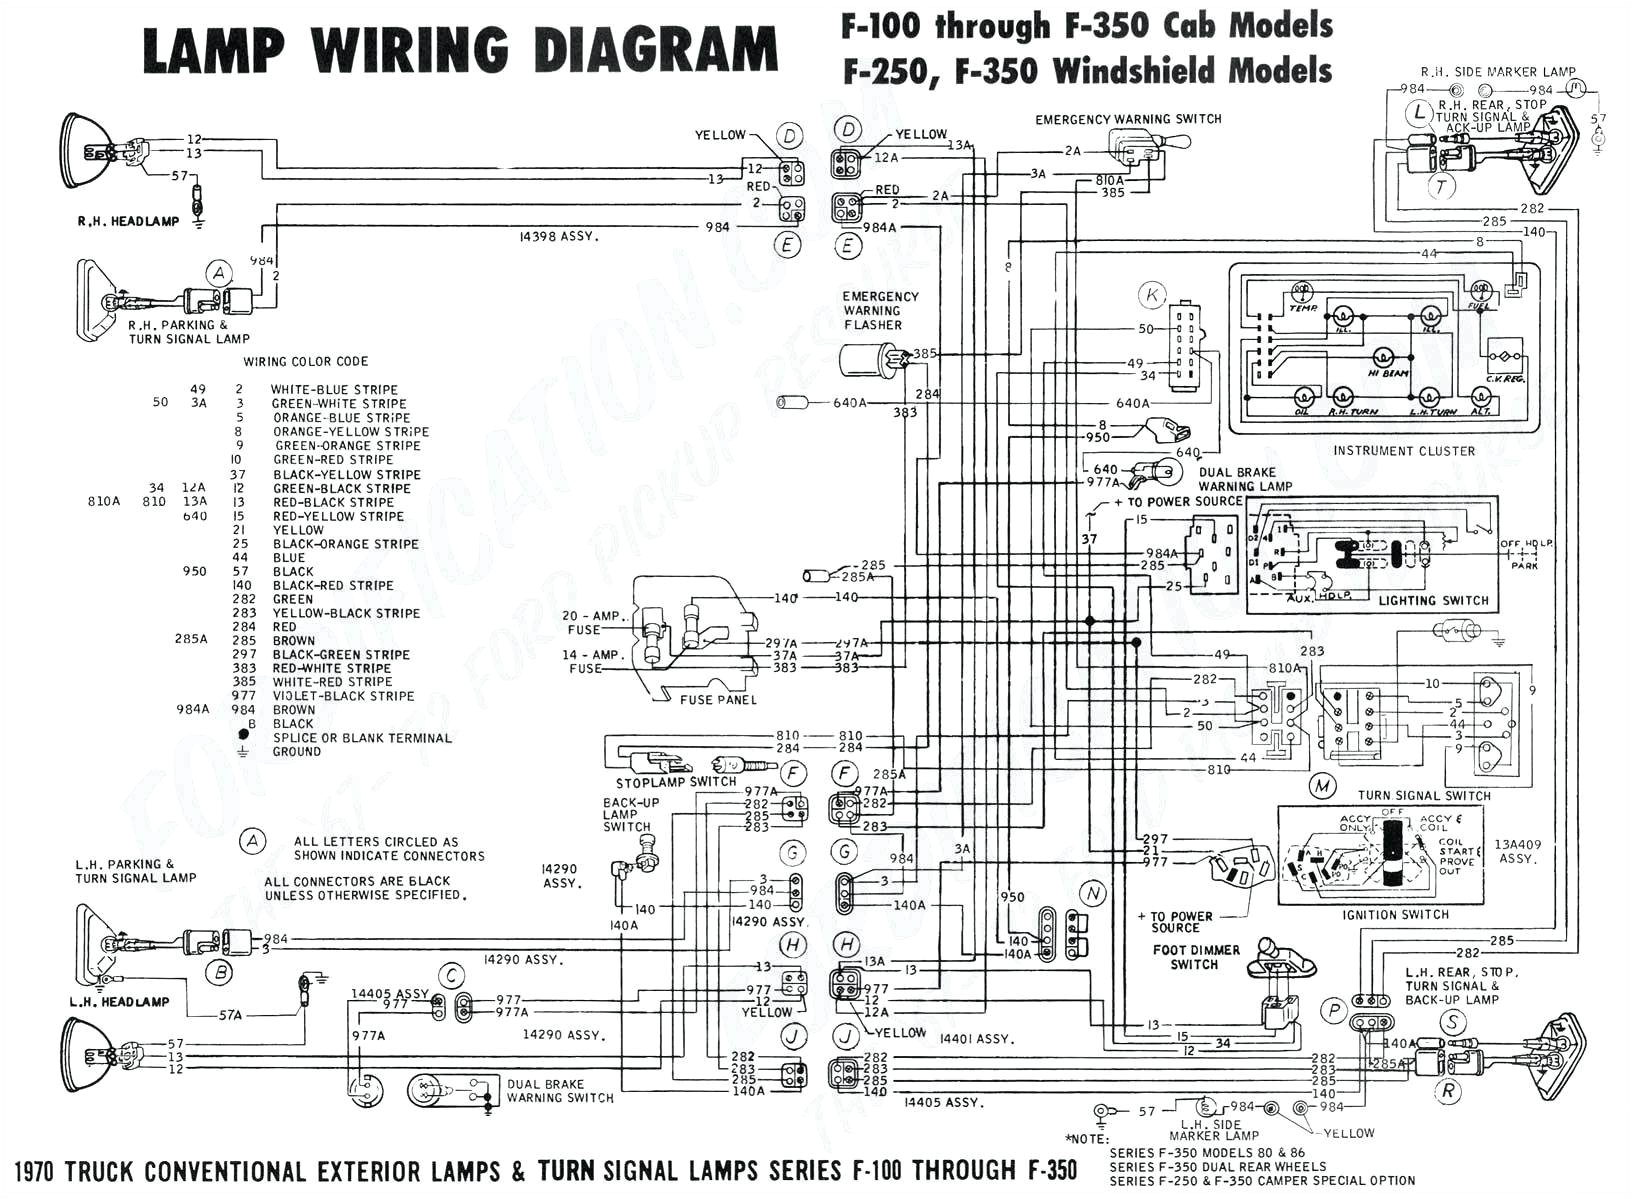 1989 mustang engine wiring diagram wiring diagrams model a ford ignition wiring diagram hecho